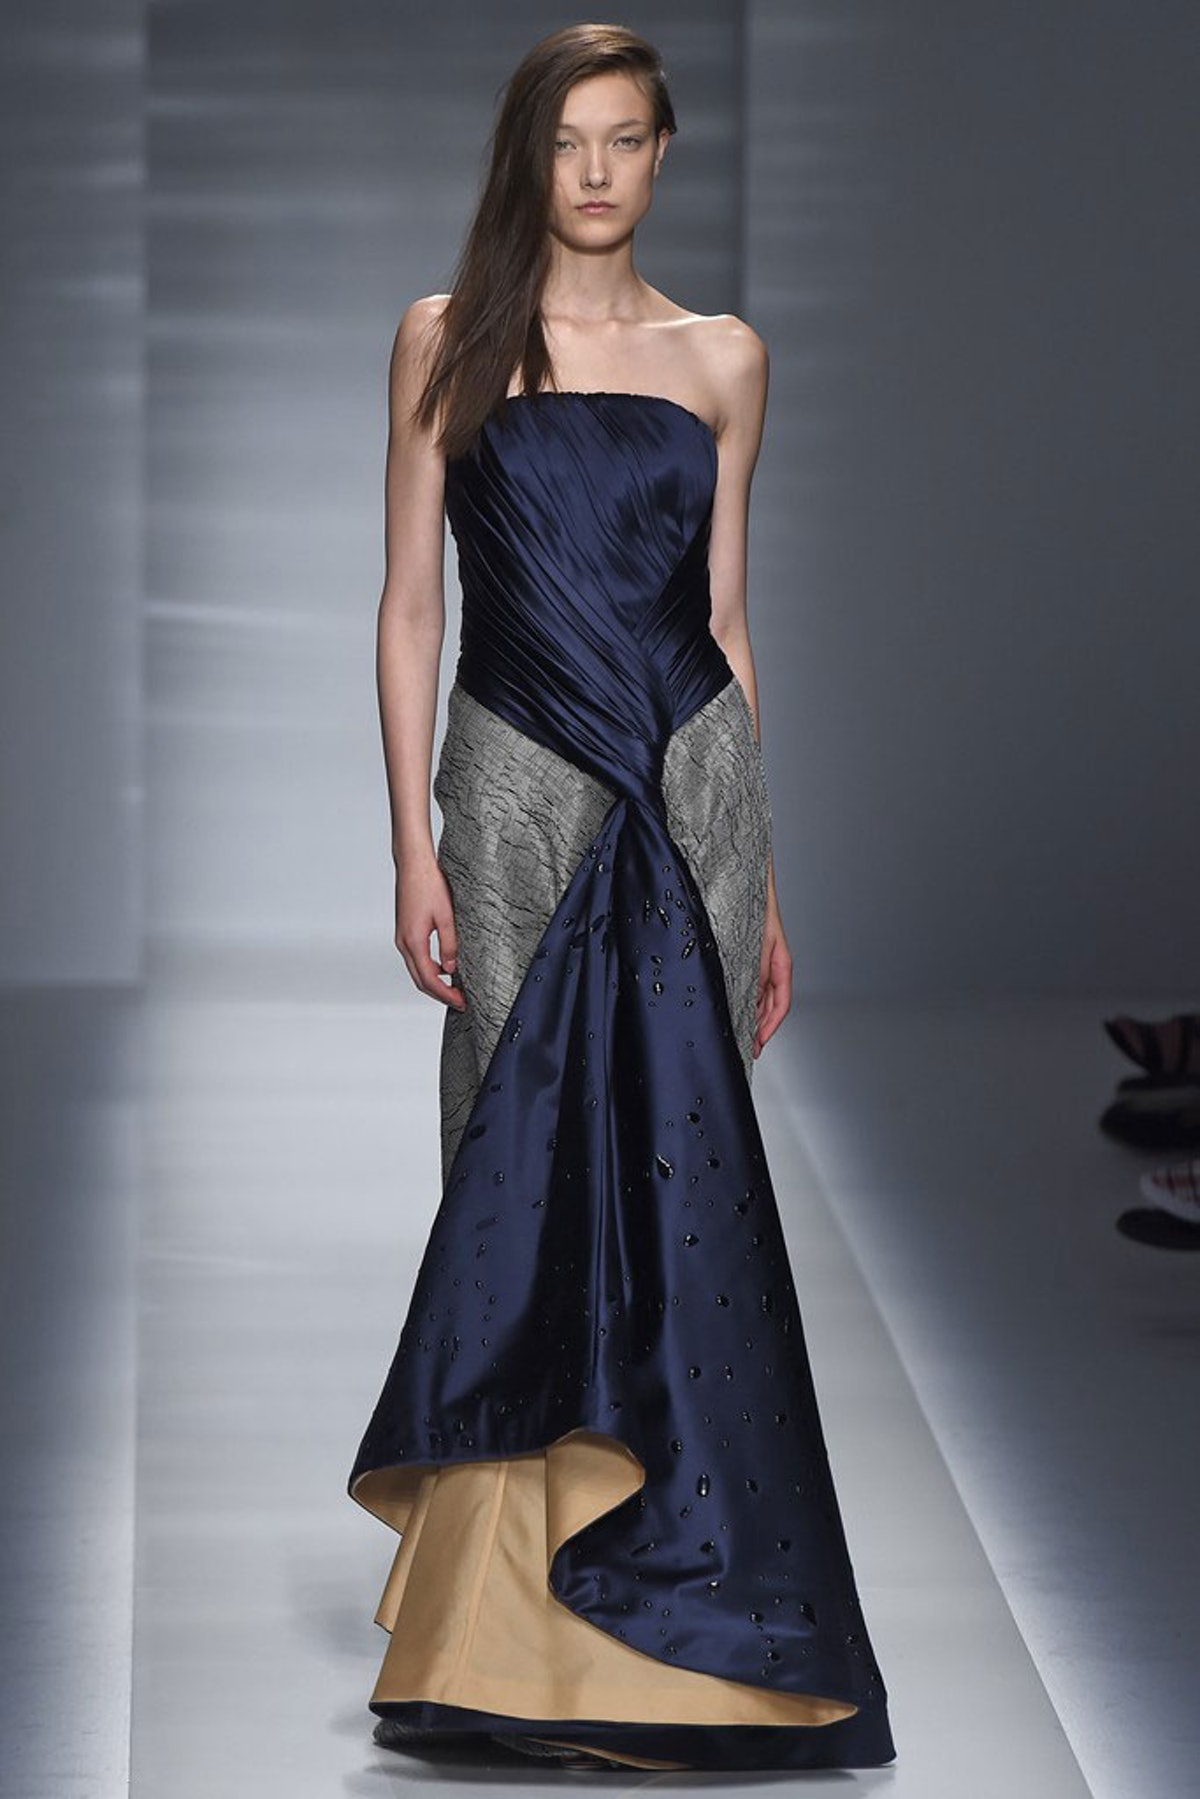 Vionnet Fall 2014 Couture